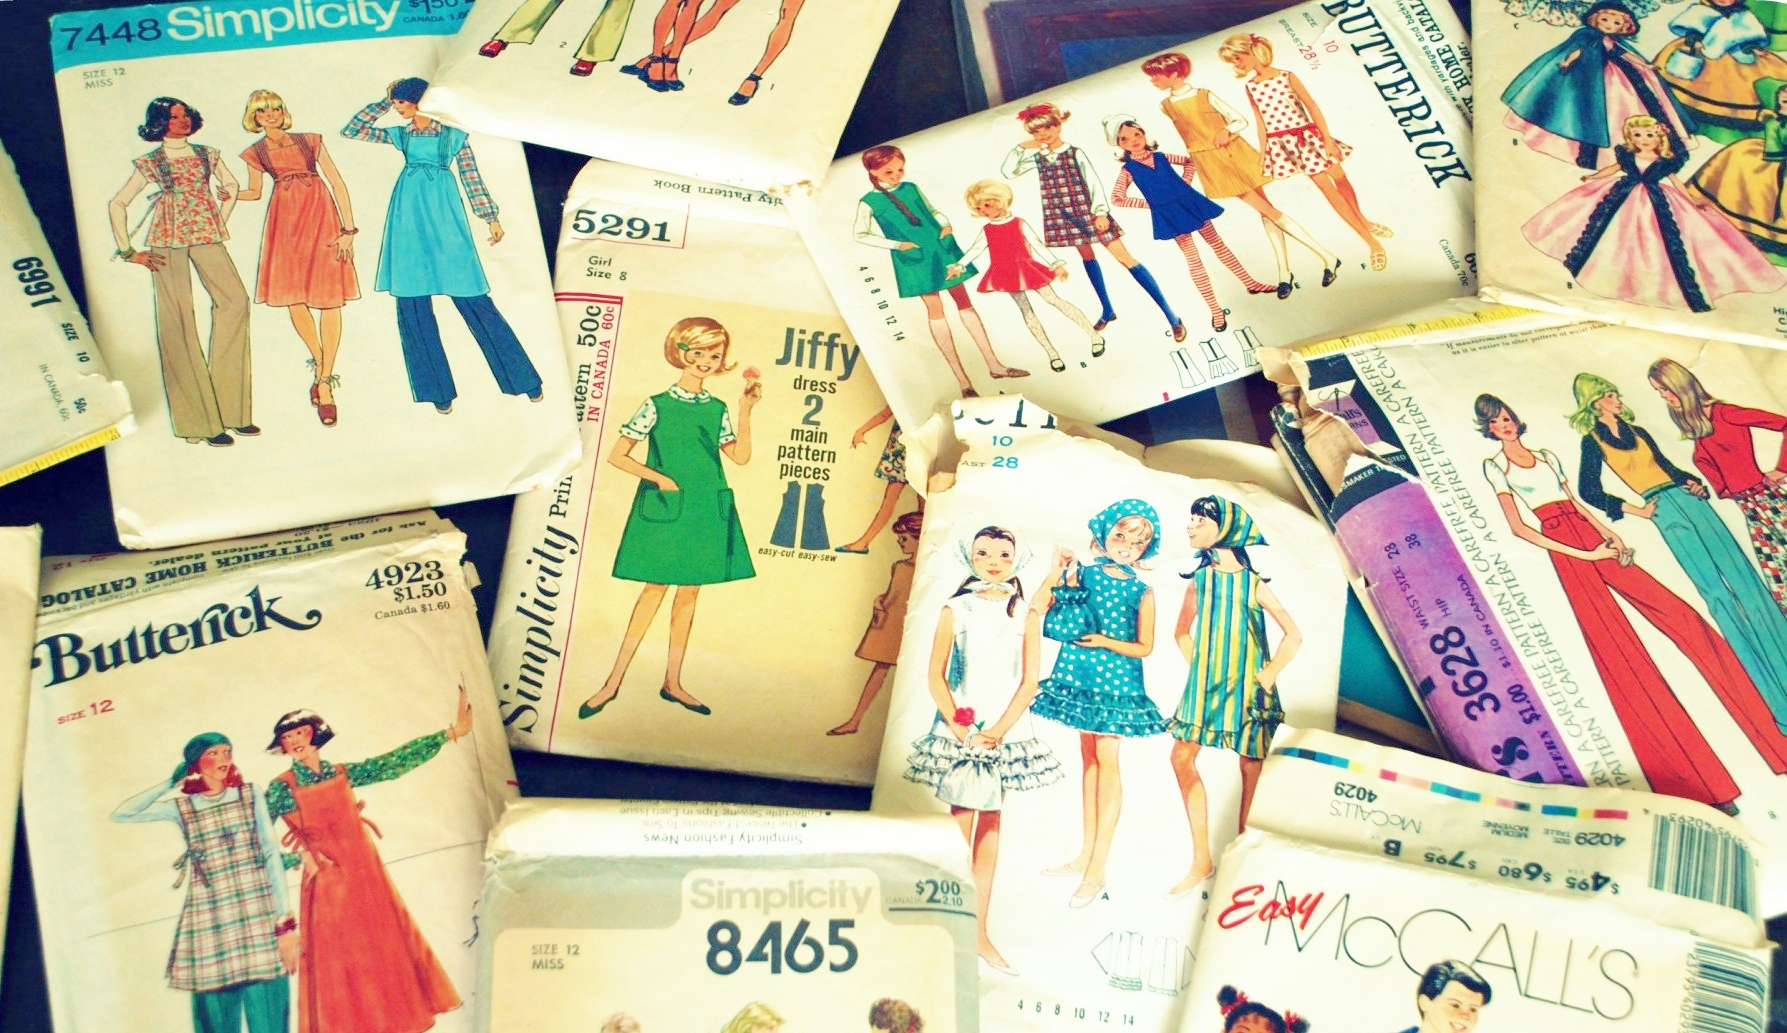 photo from A Forsest Frolic   http://aforestfrolic.typepad.com/a-forest-frolic/2010/07/vintage-sewing-patterns.html